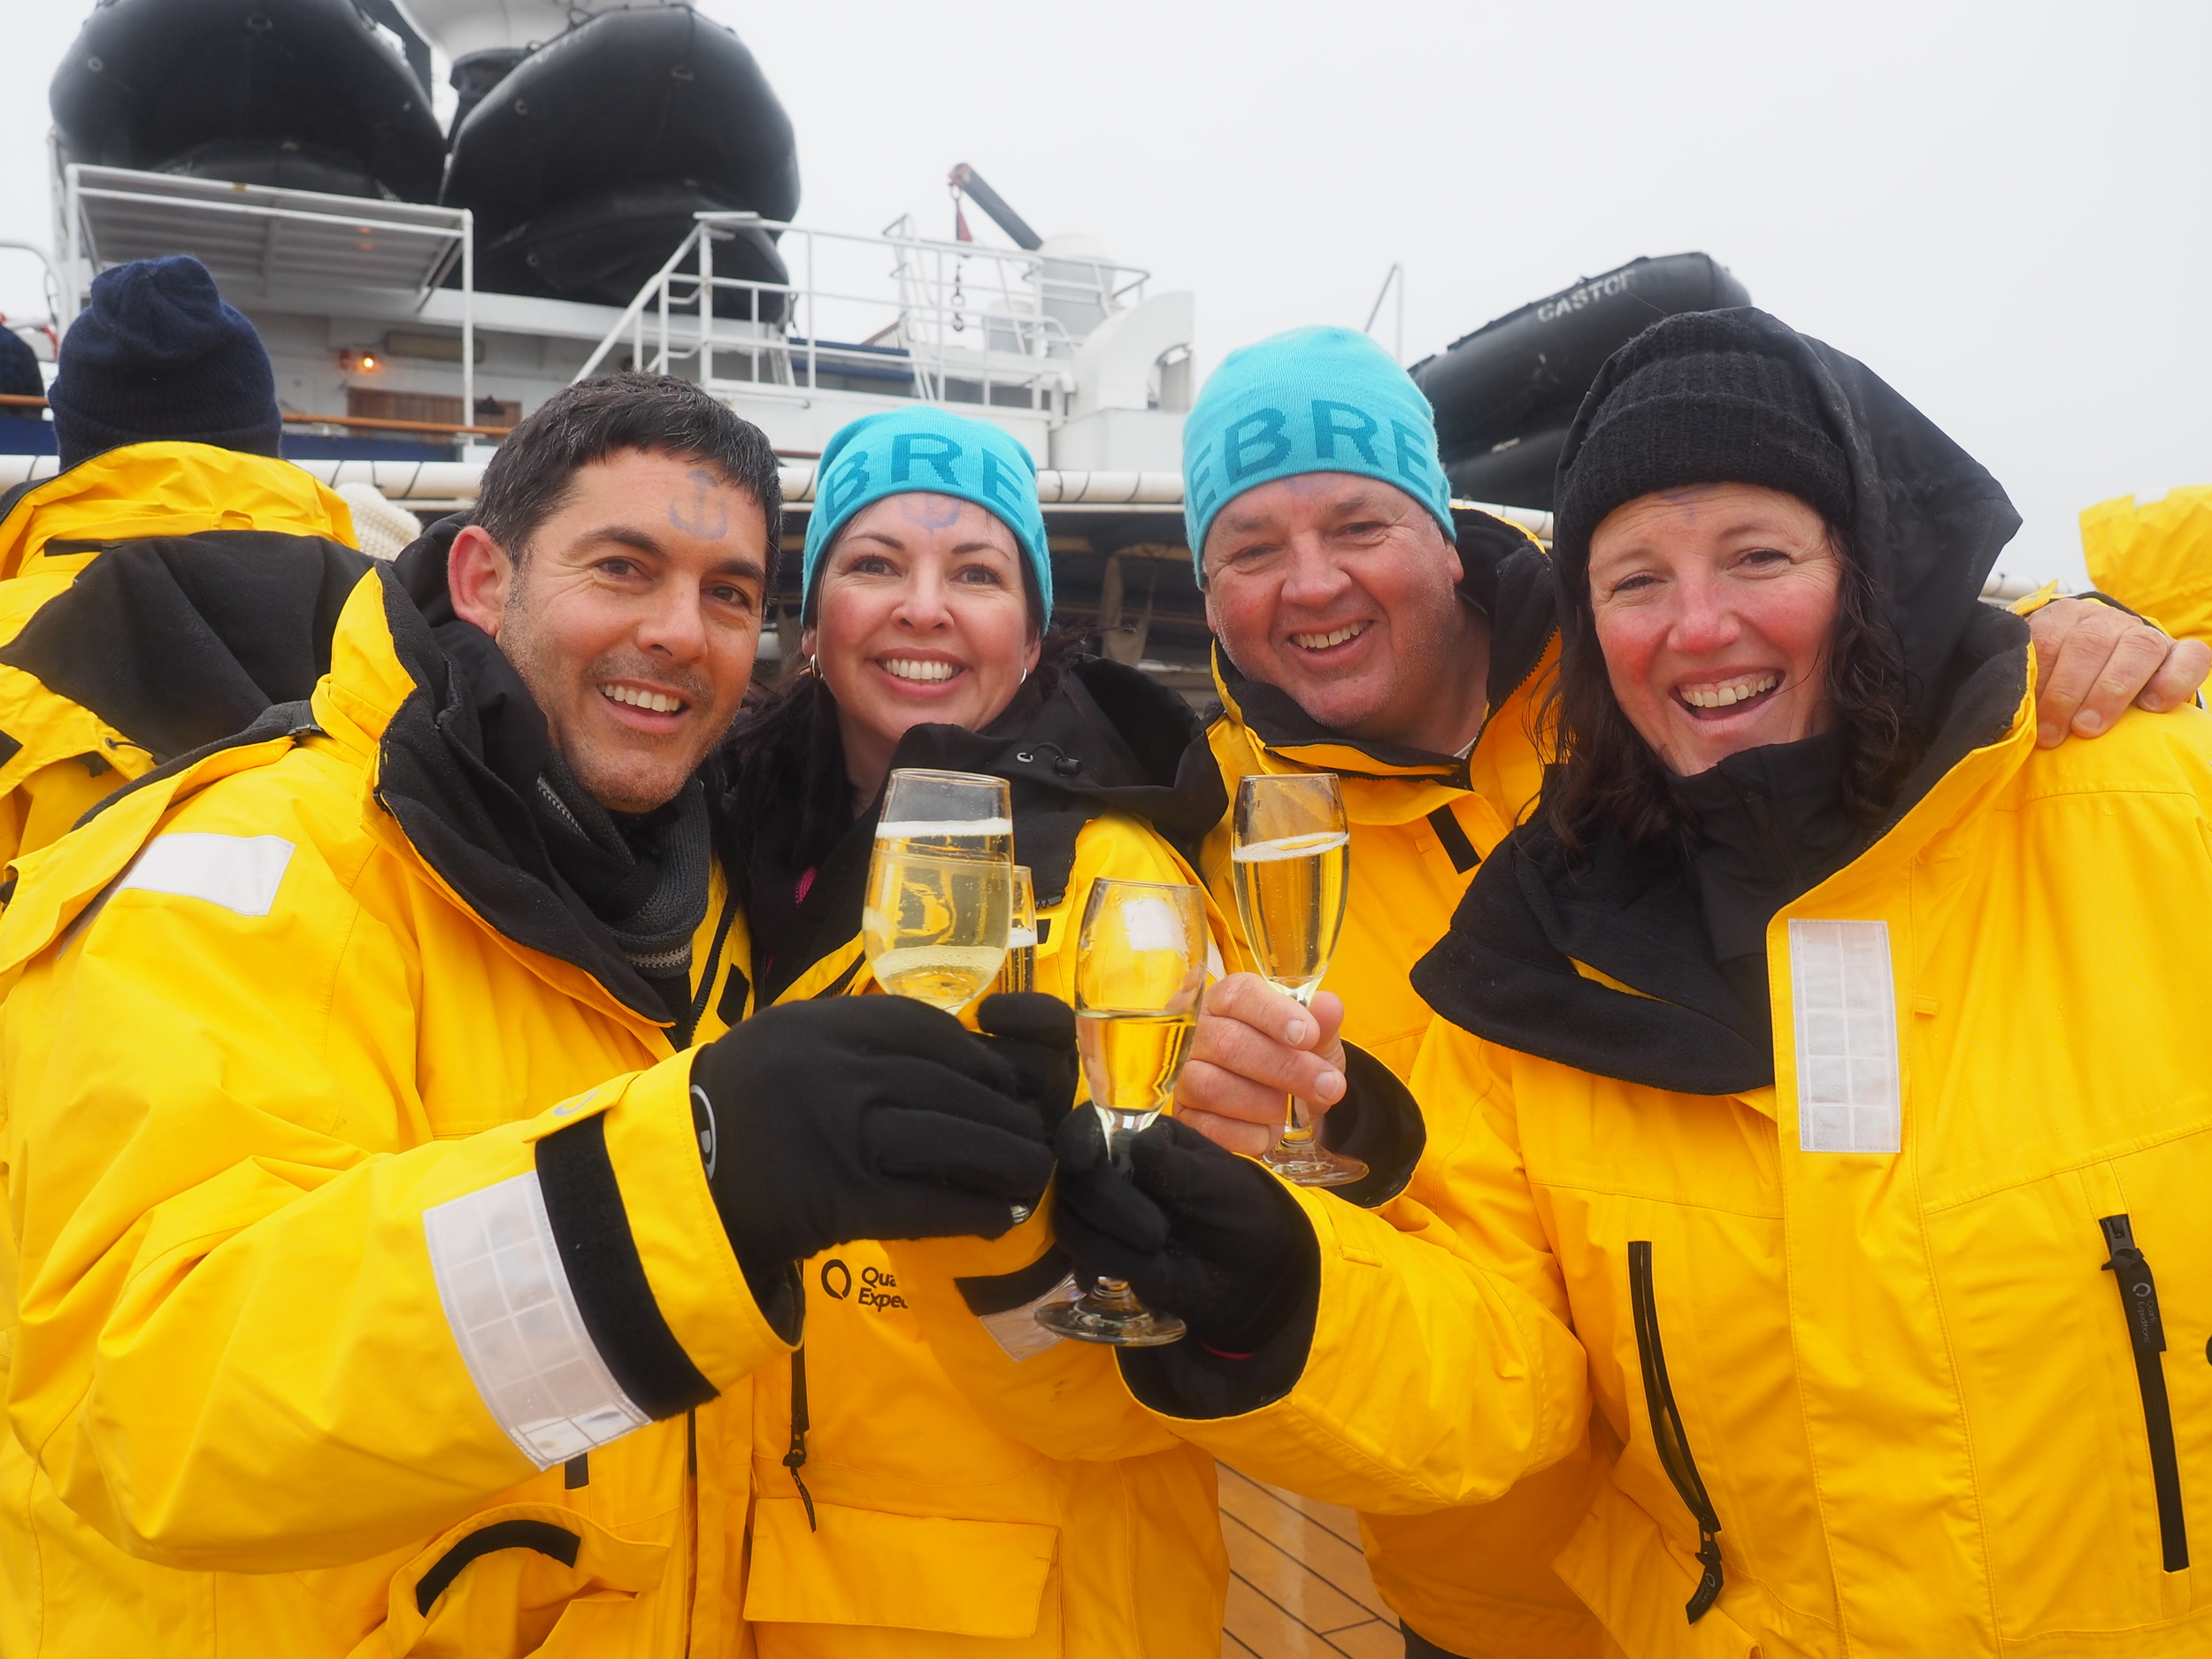 (L-R): Jeff  & Donna Ghaemaghamy with Craig Doyle & Ryll Burgin-Doyle  in Antarctica c elebrating the genesis of 90Degrees Global.